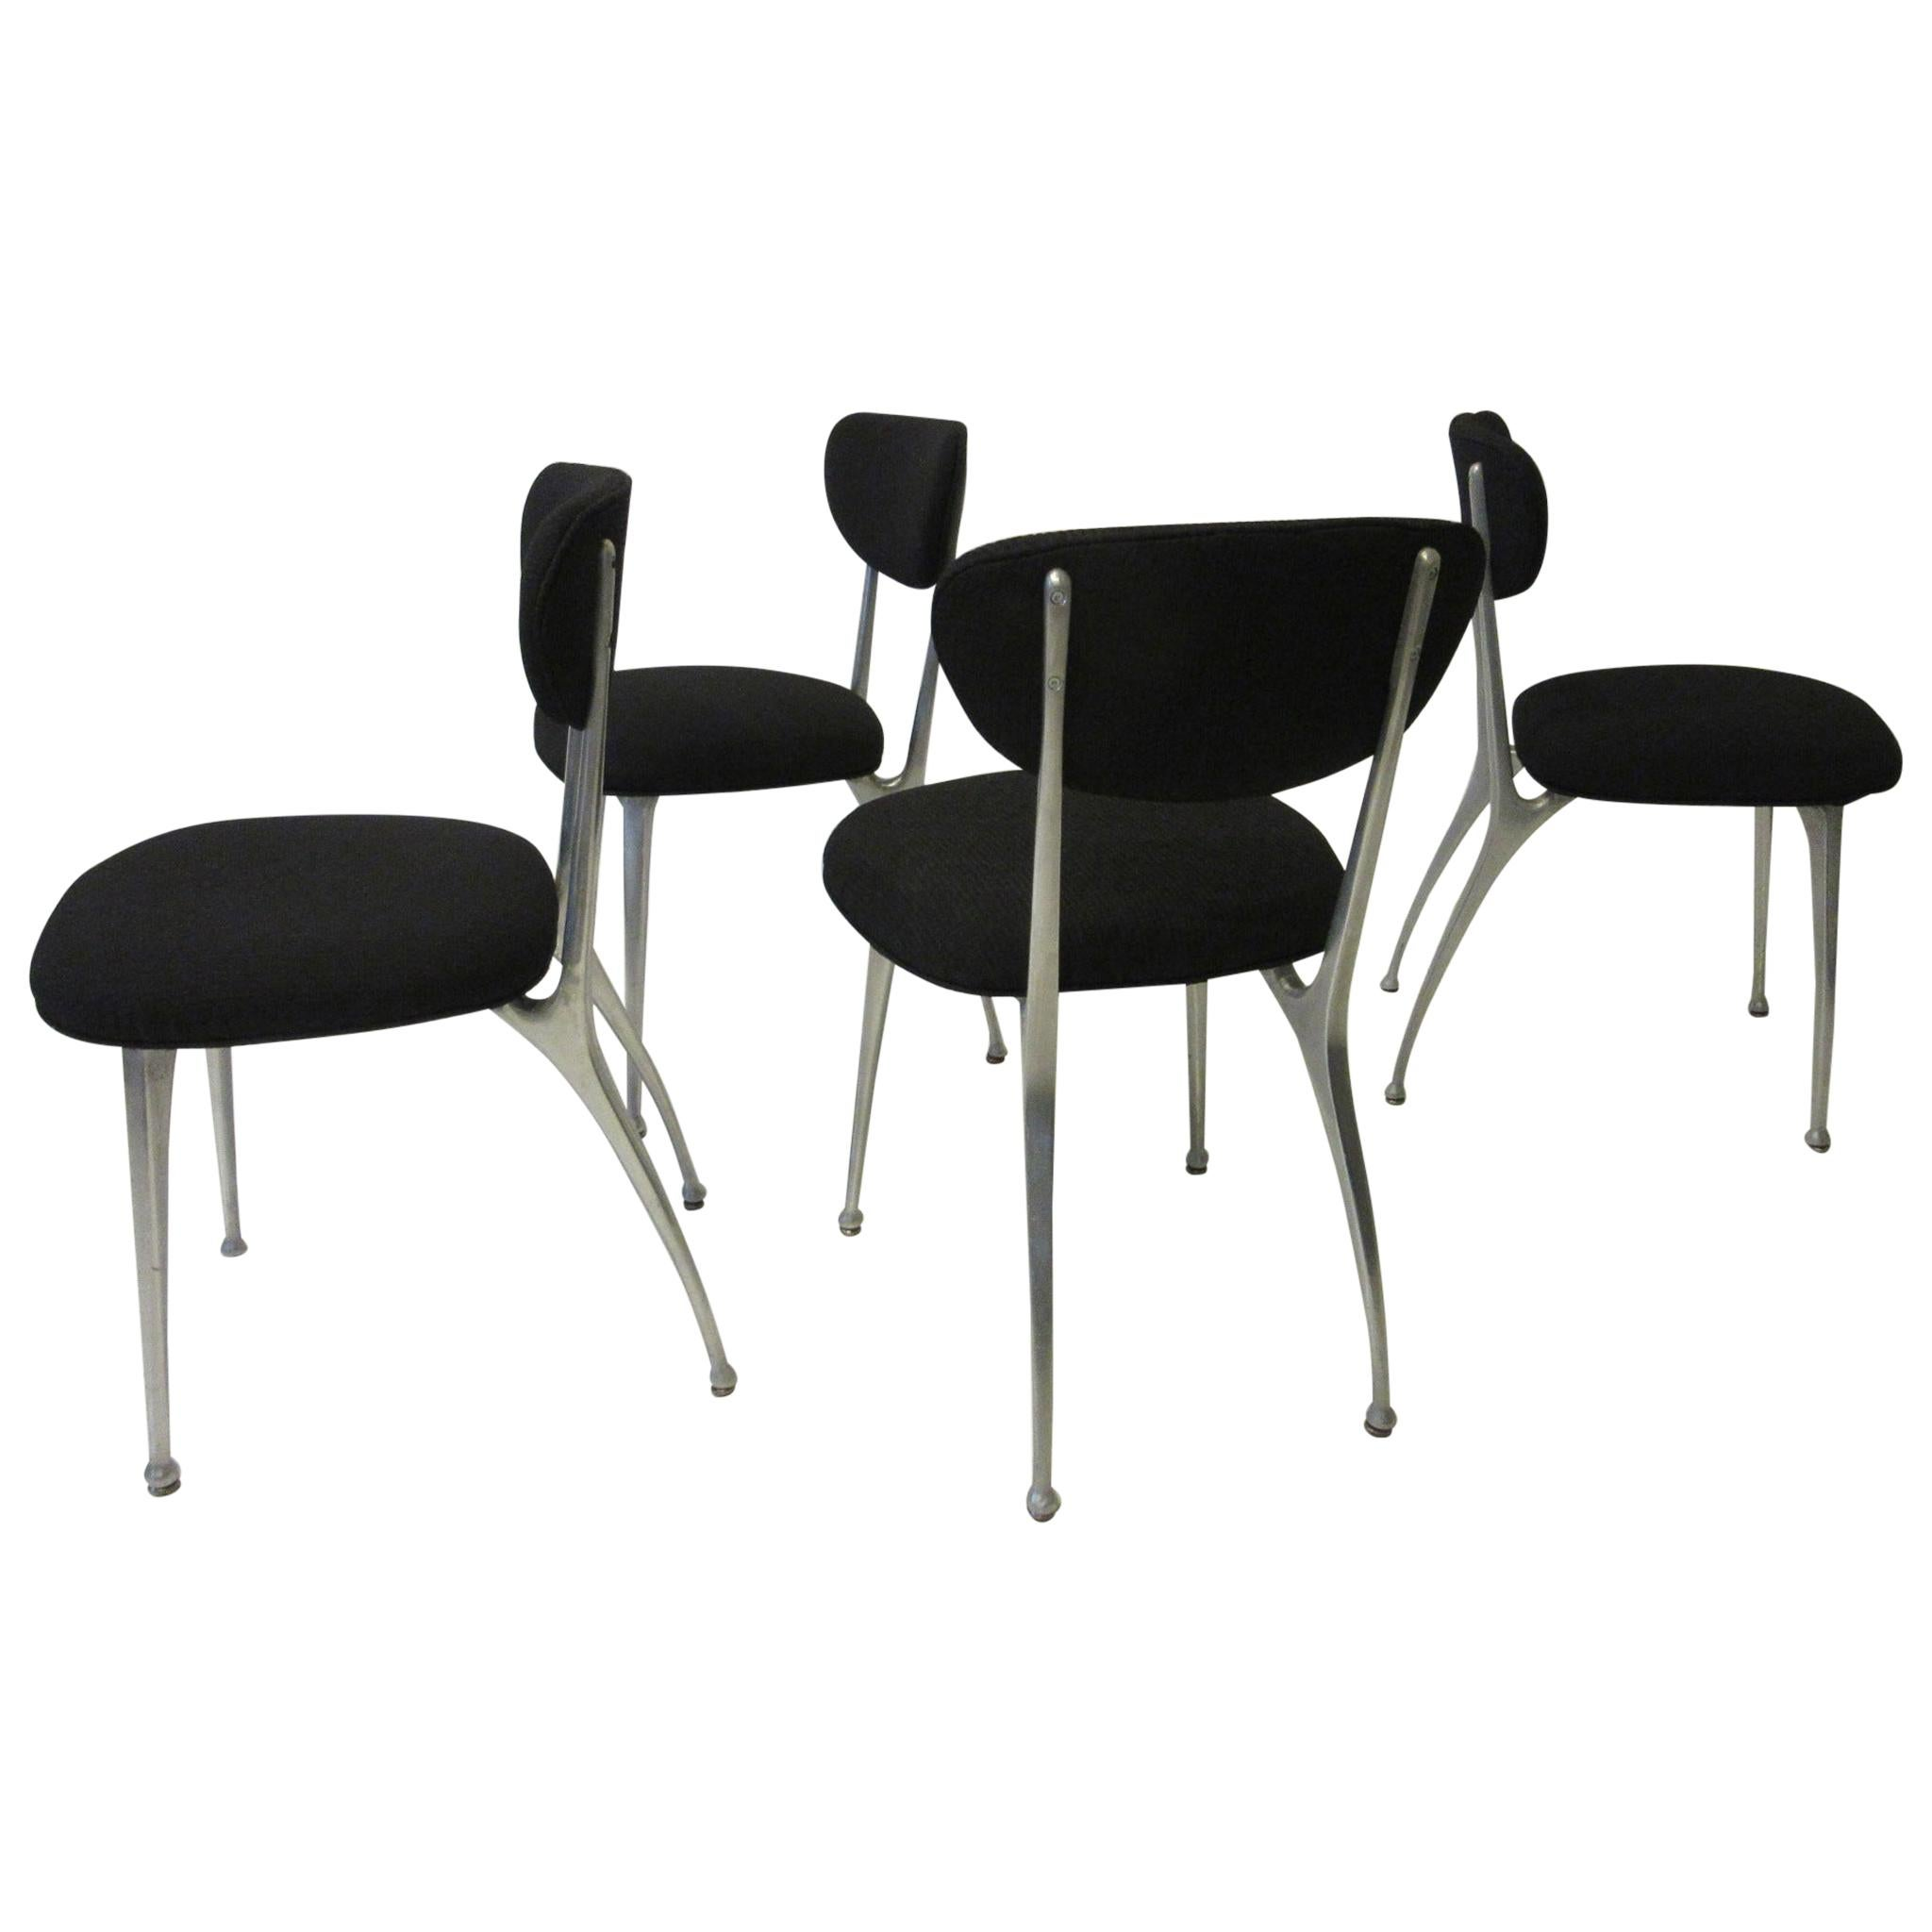 Gazelle Cast Aluminium Upholstered Dining Chairs by Shelby Williams